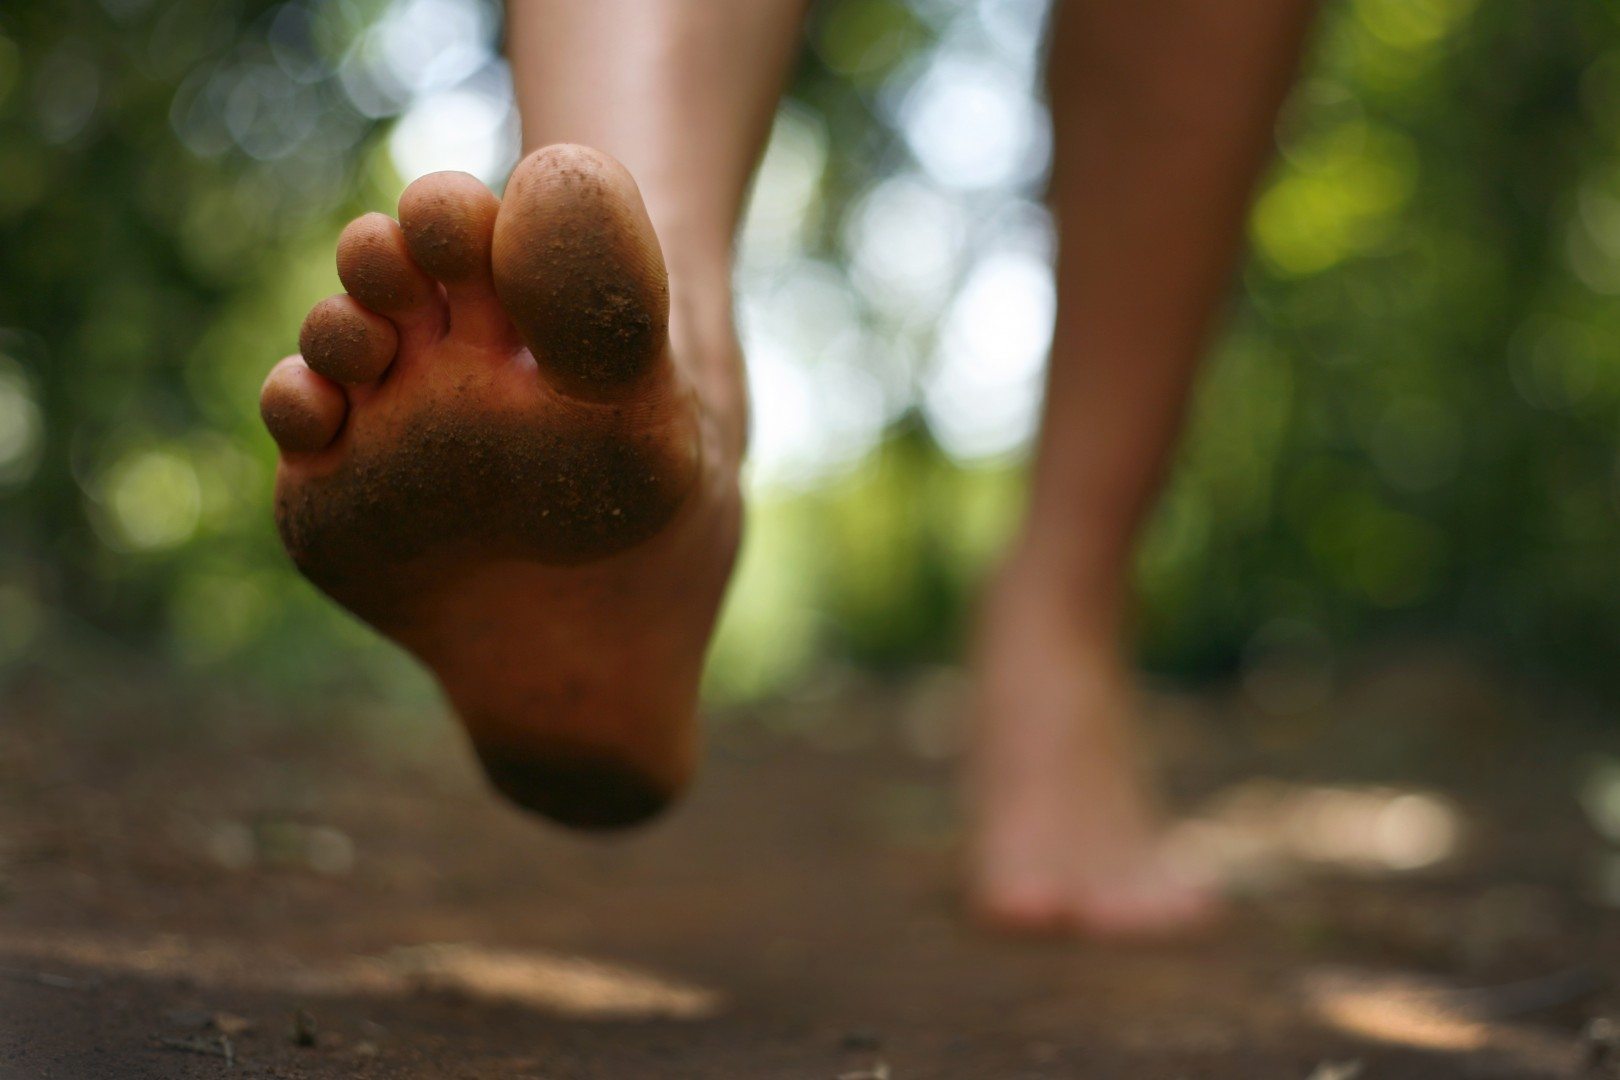 Page Turner June Crossing Bare Foot Young Man in Forest Trail